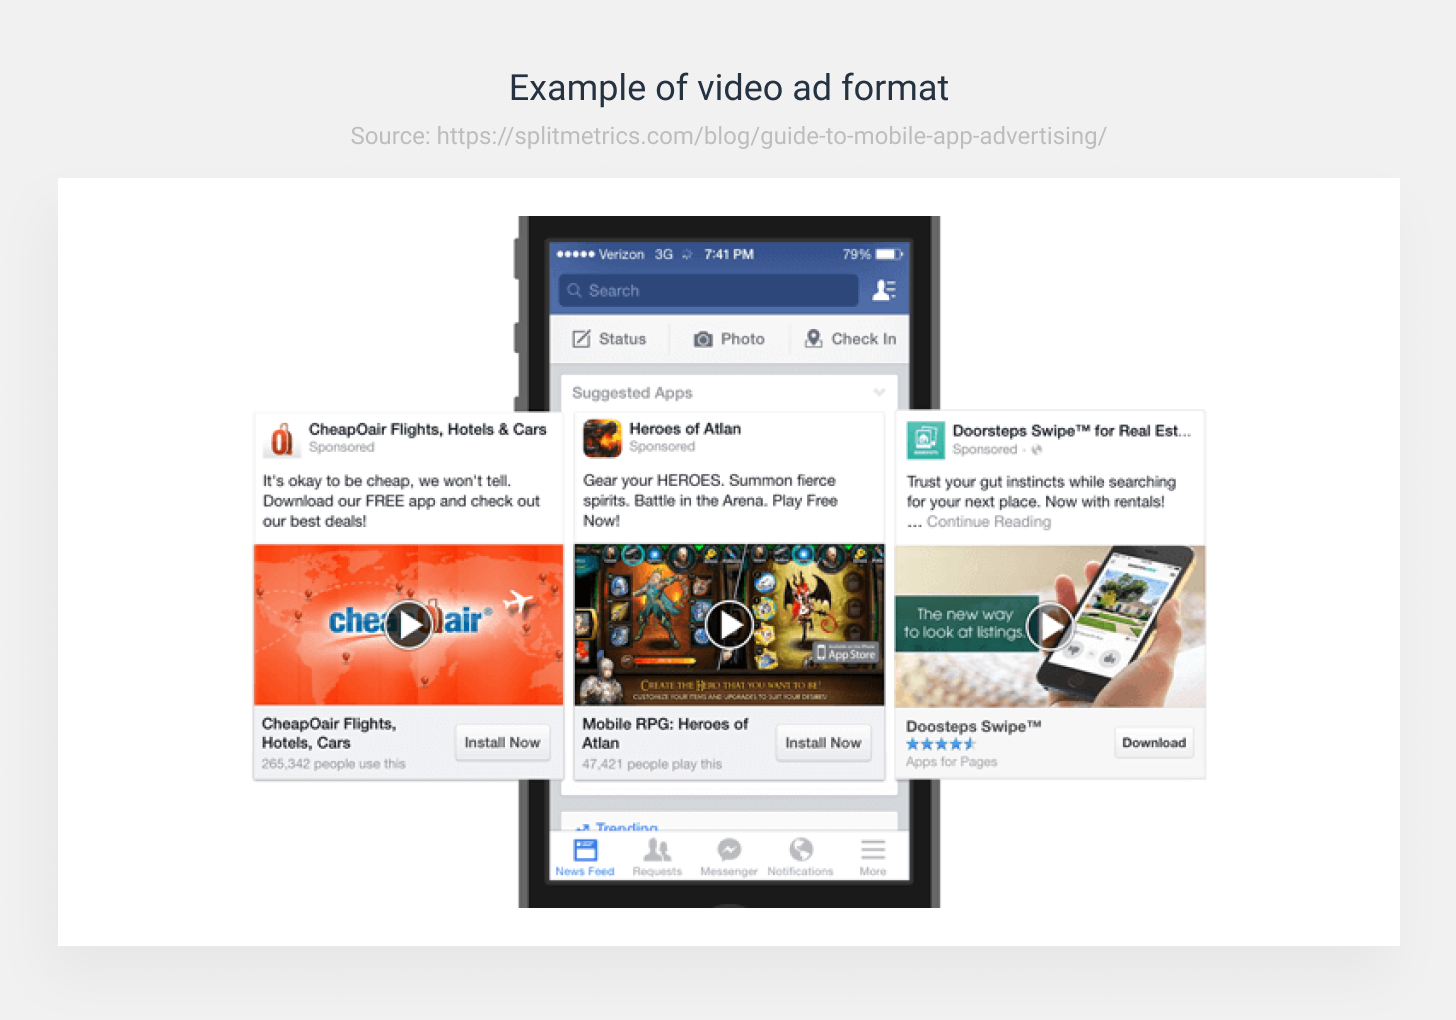 video ads format on mobilephone